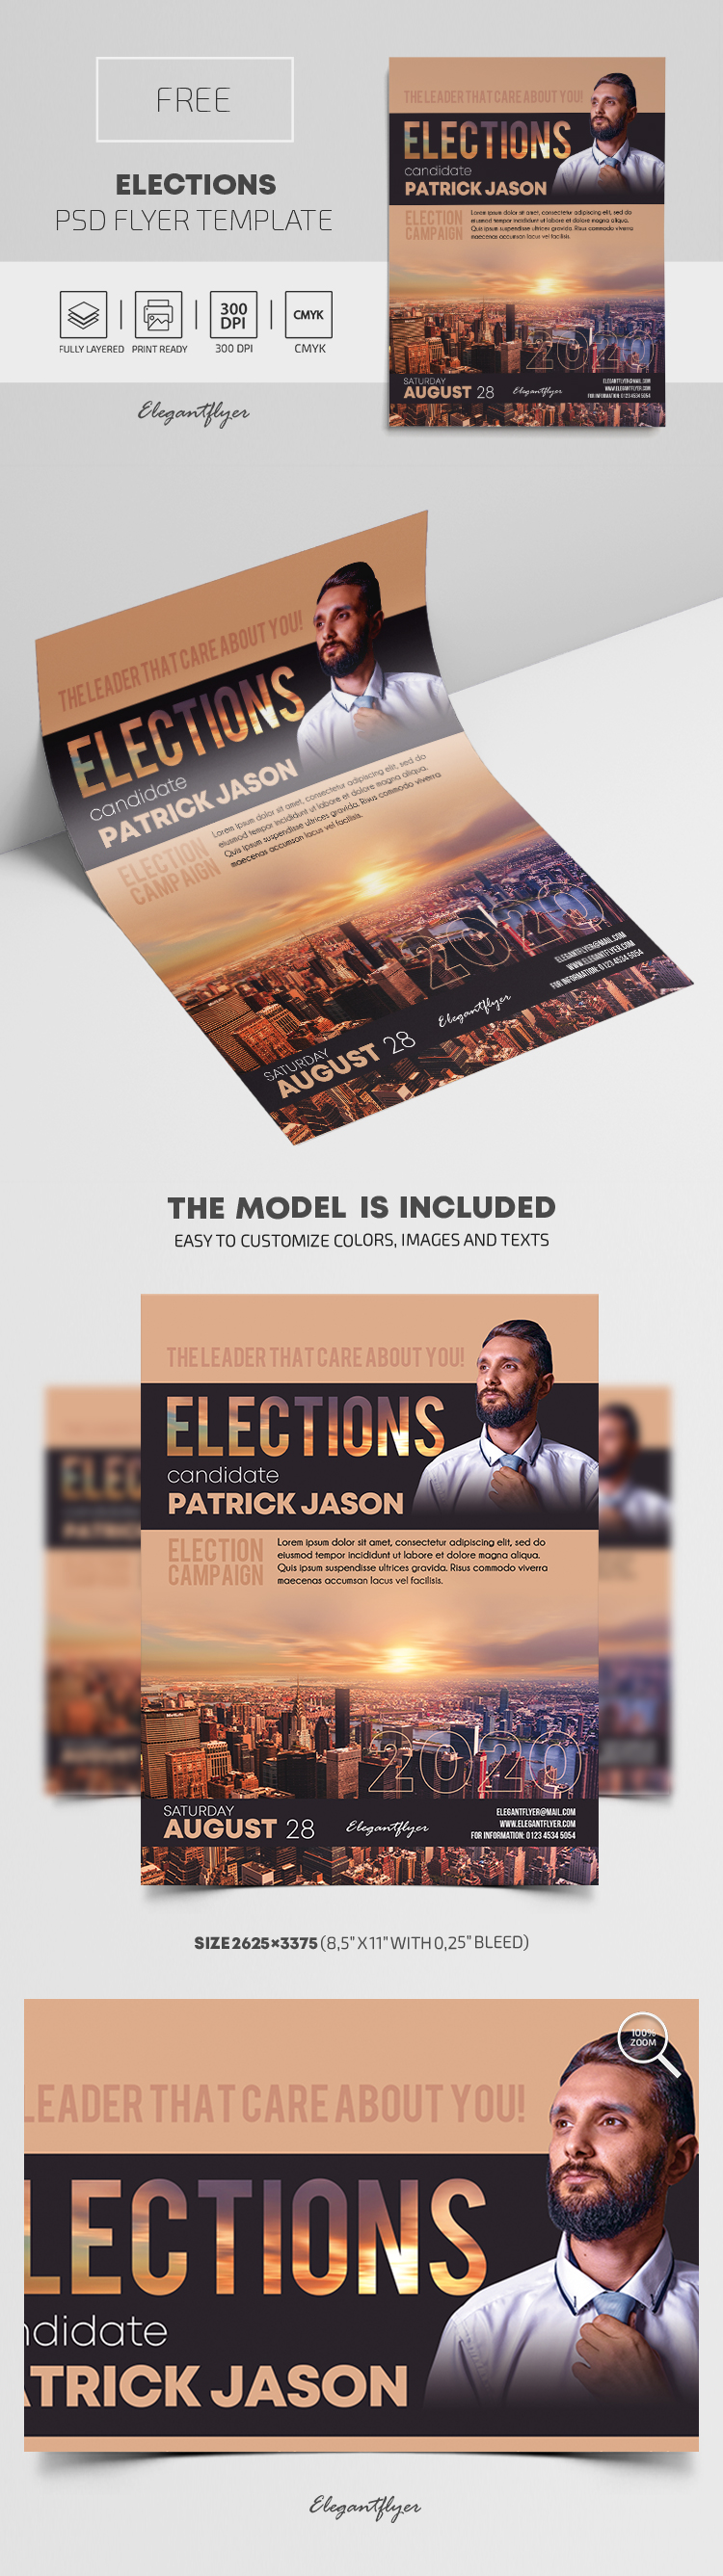 Elections – Free PSD Flyer Template